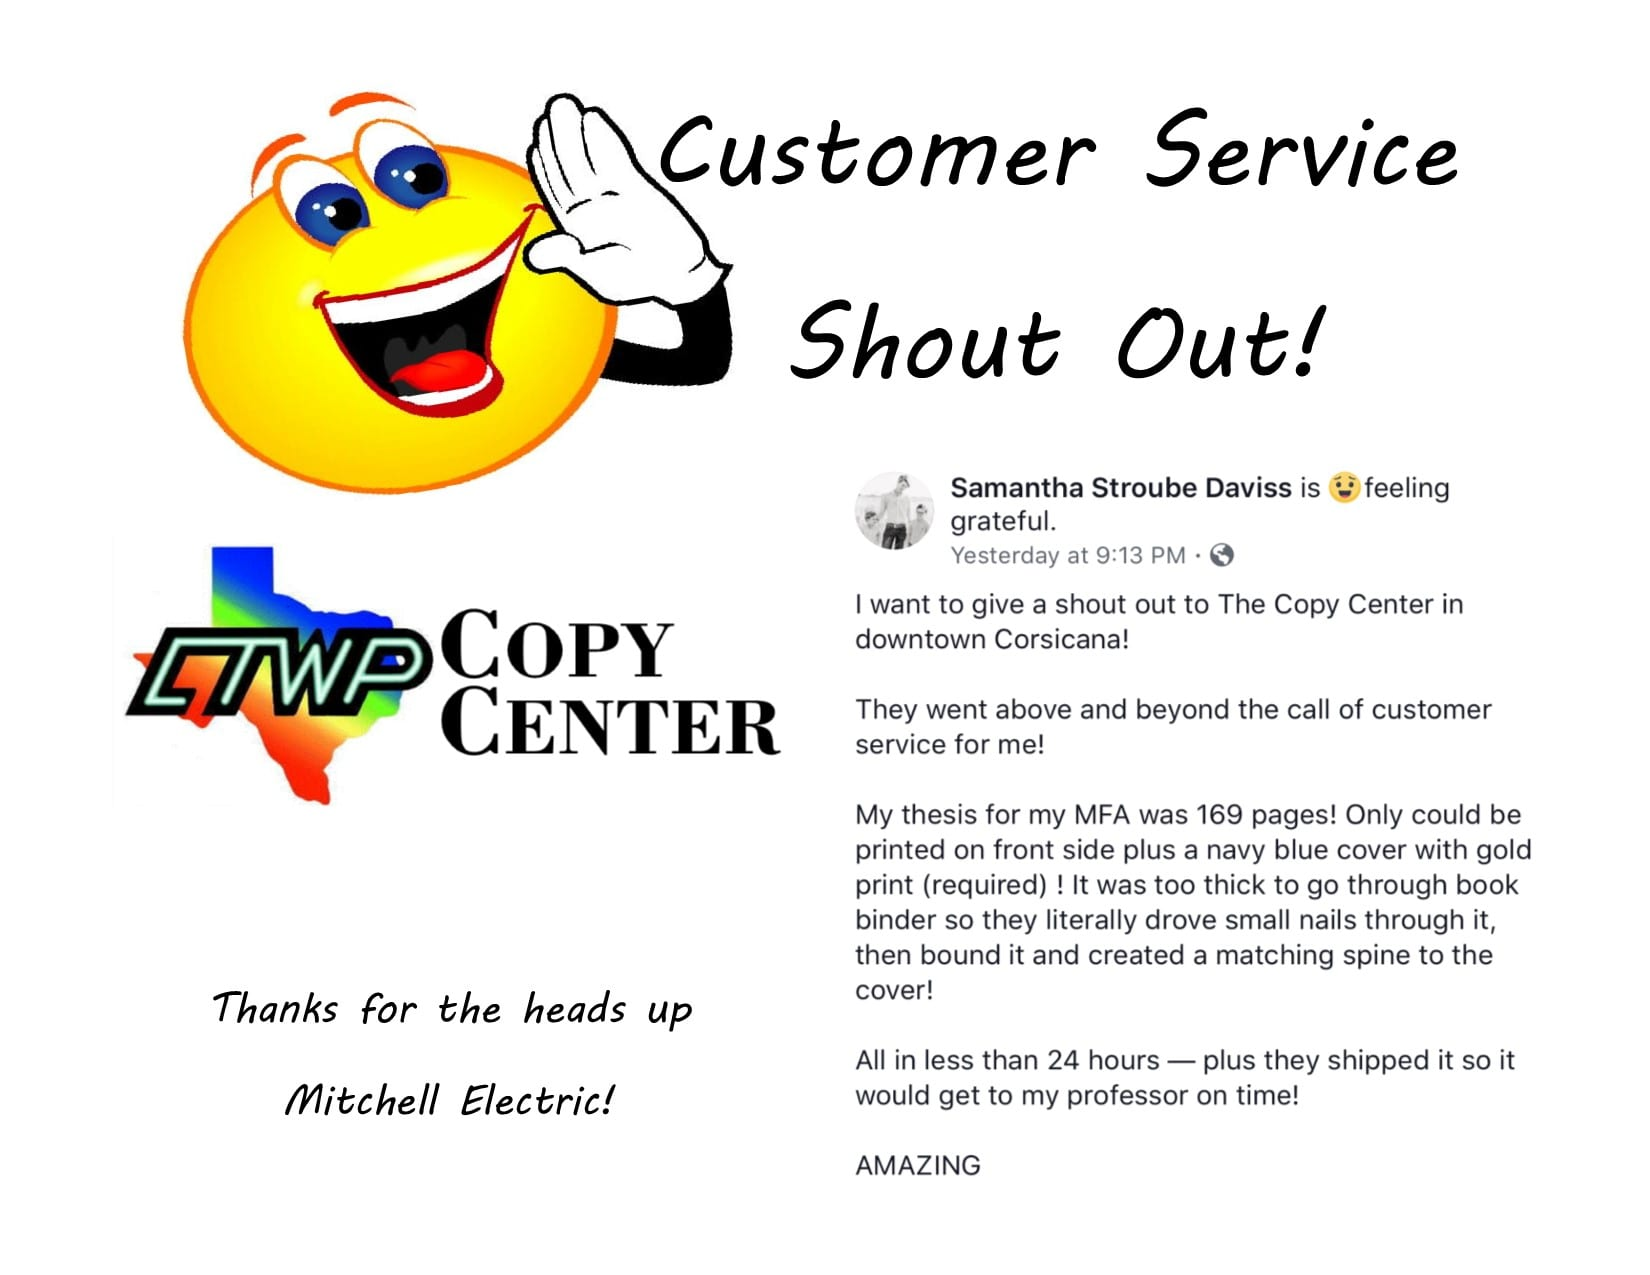 Customer Service SHout out